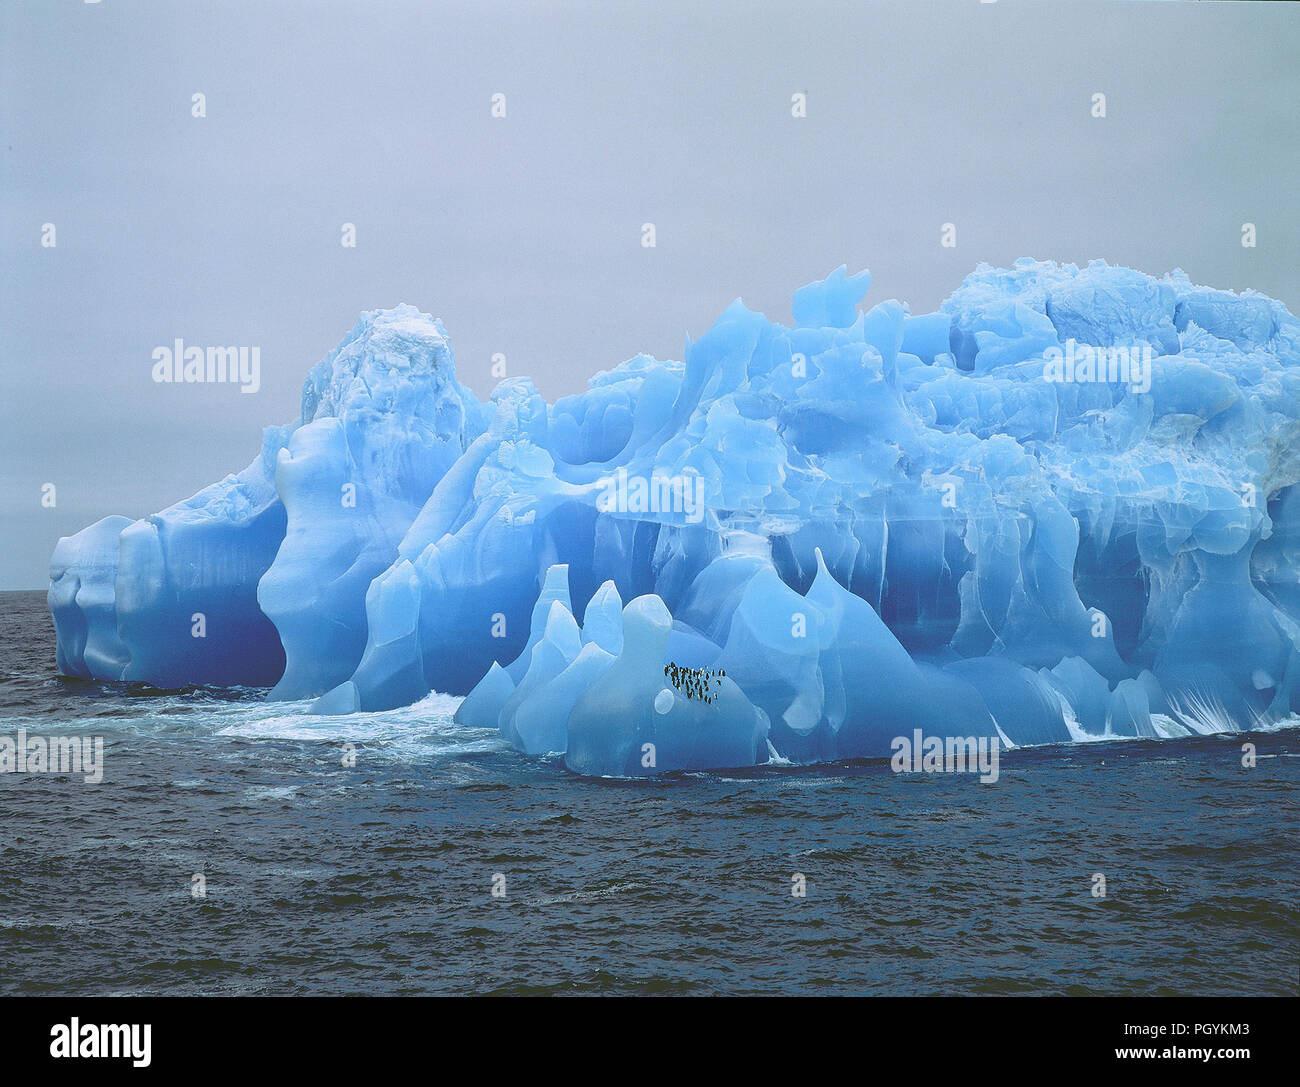 Iceberg with pingouins - Antartica - Stock Image